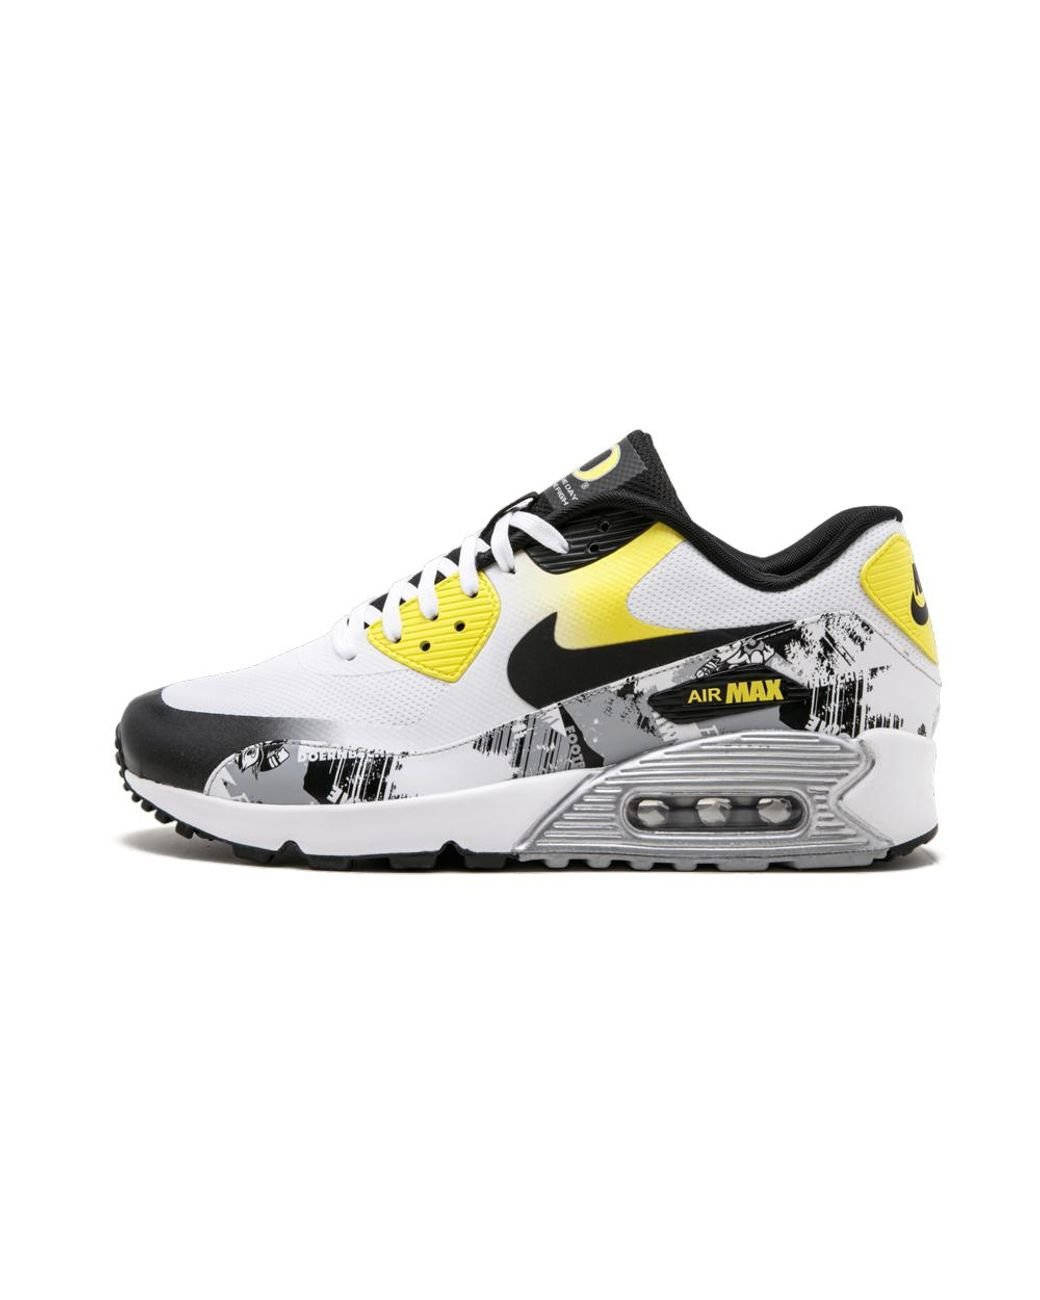 Nike Womens Air Max 90 Prm Db Shoes Size 5w White Nike Sneakers from Lyst | ShapeShop